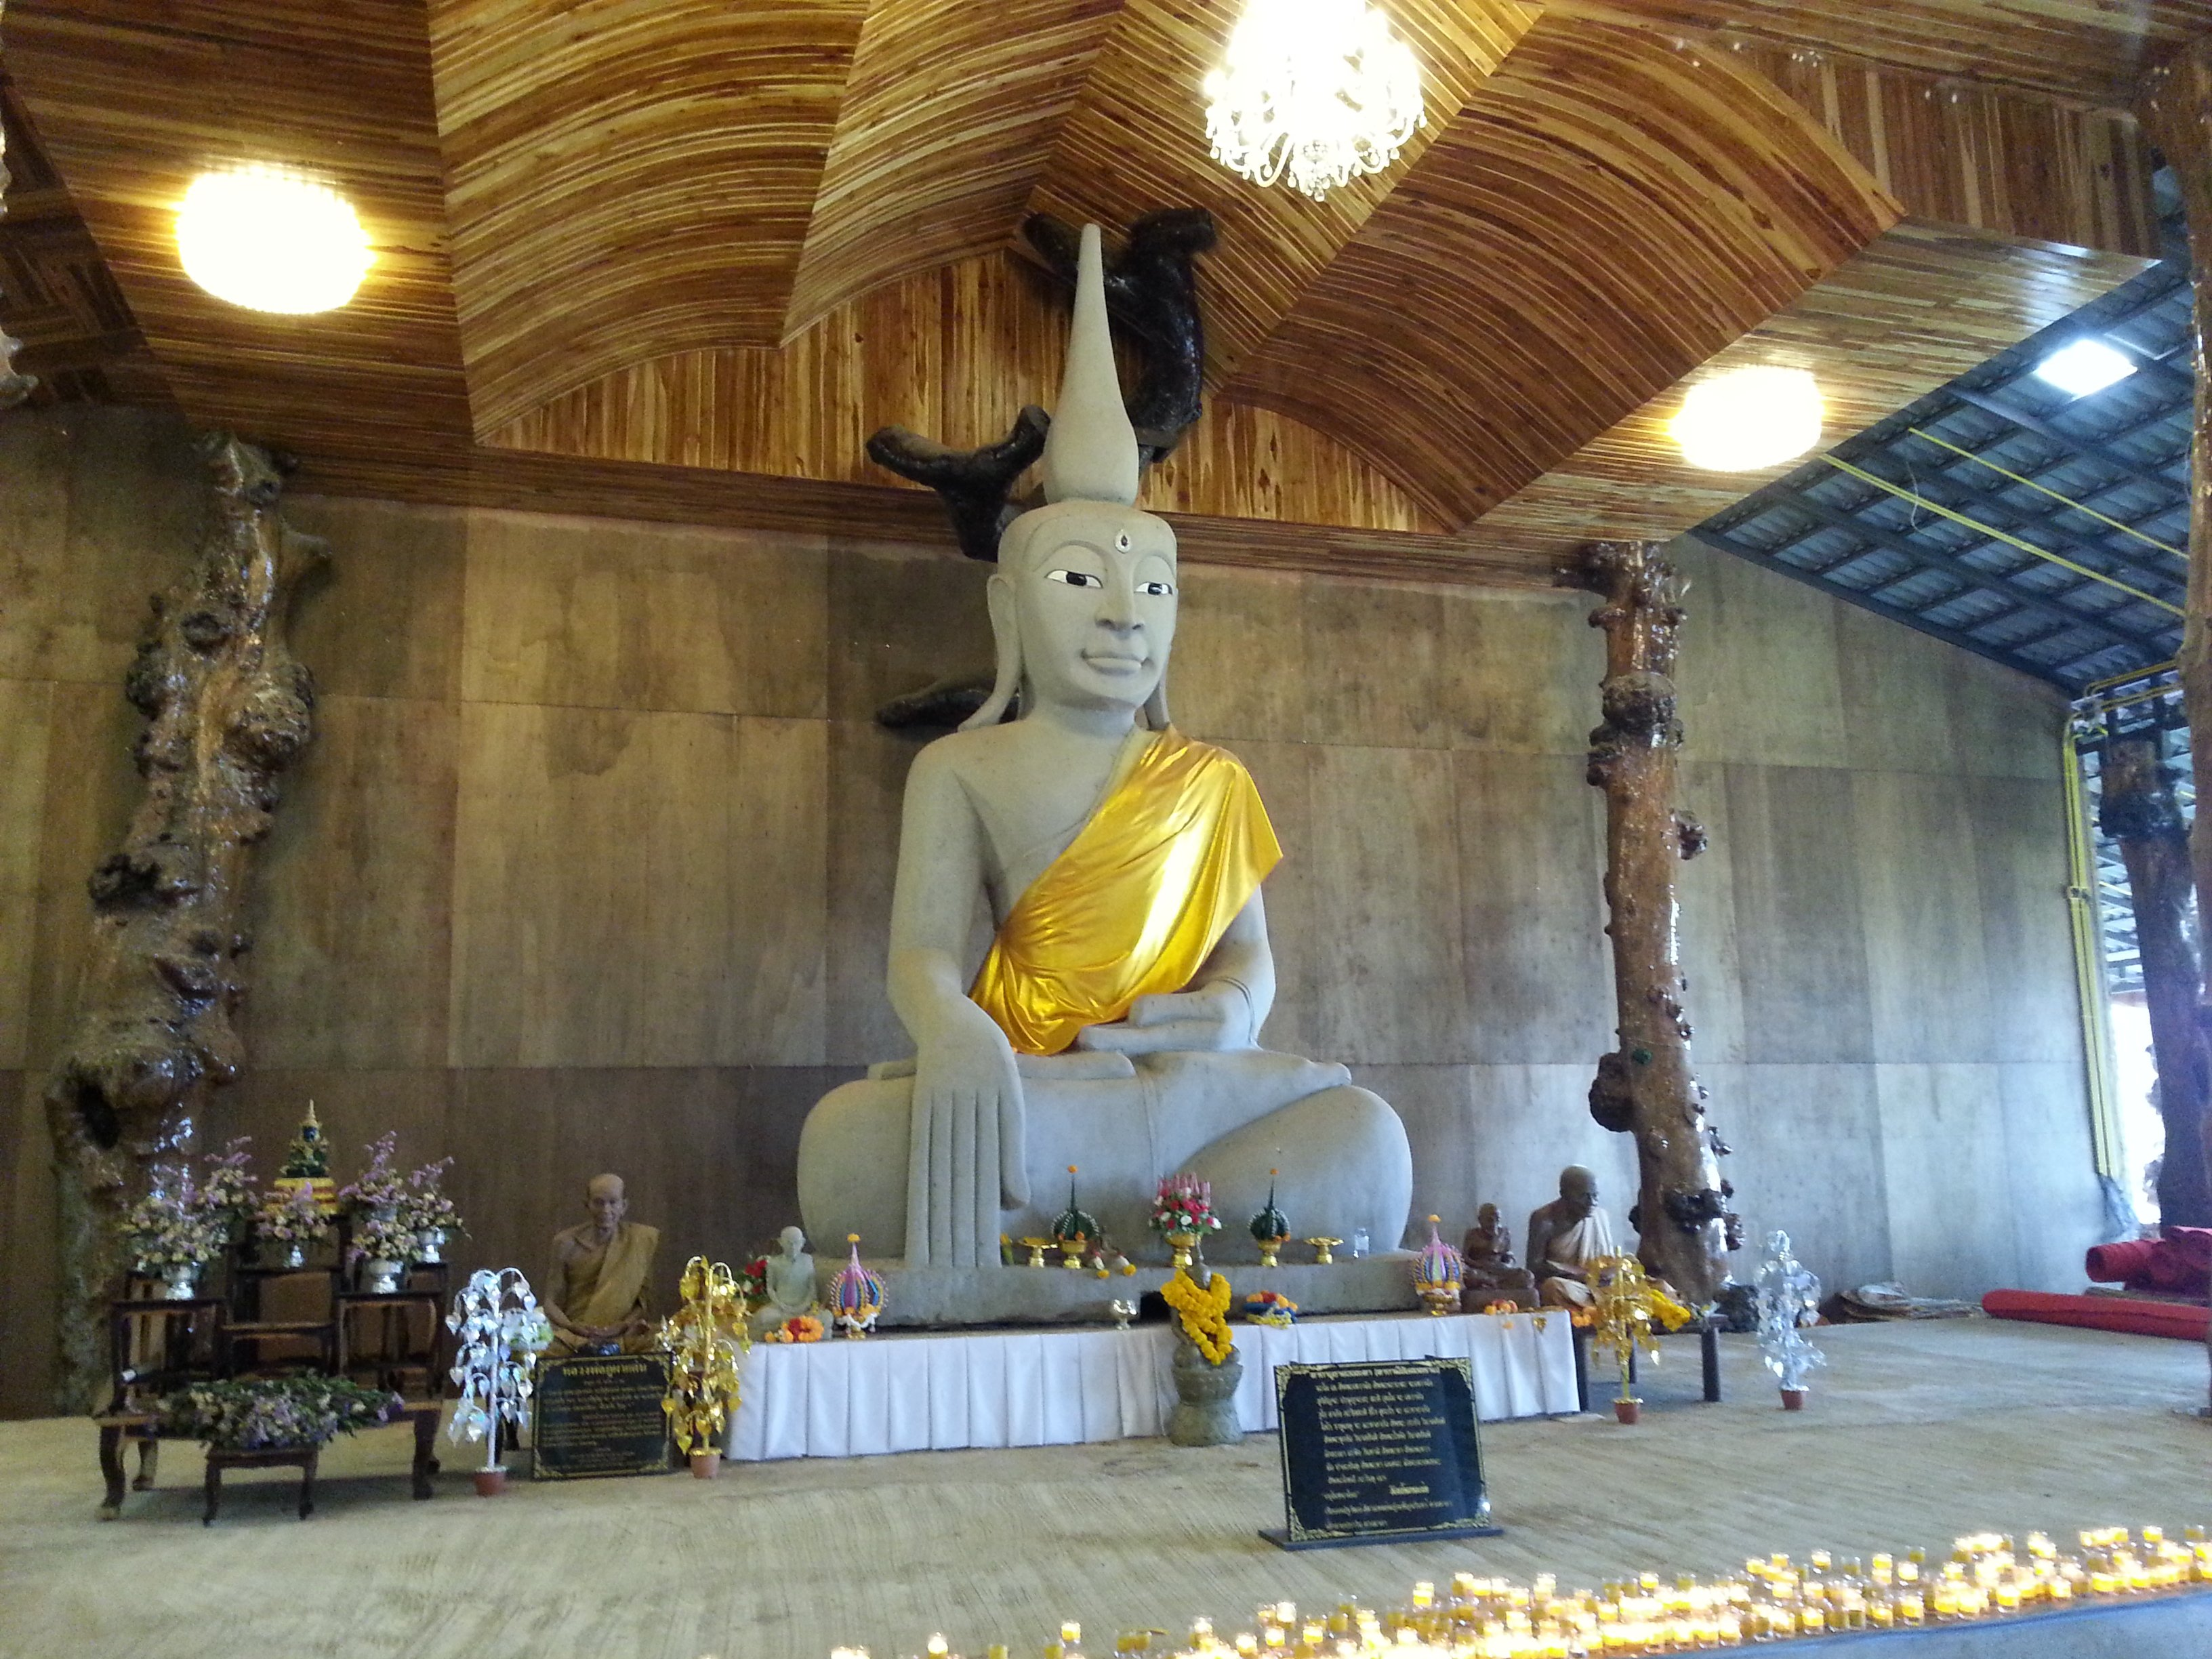 Inside the main temple at Wat Tham Pha Daen